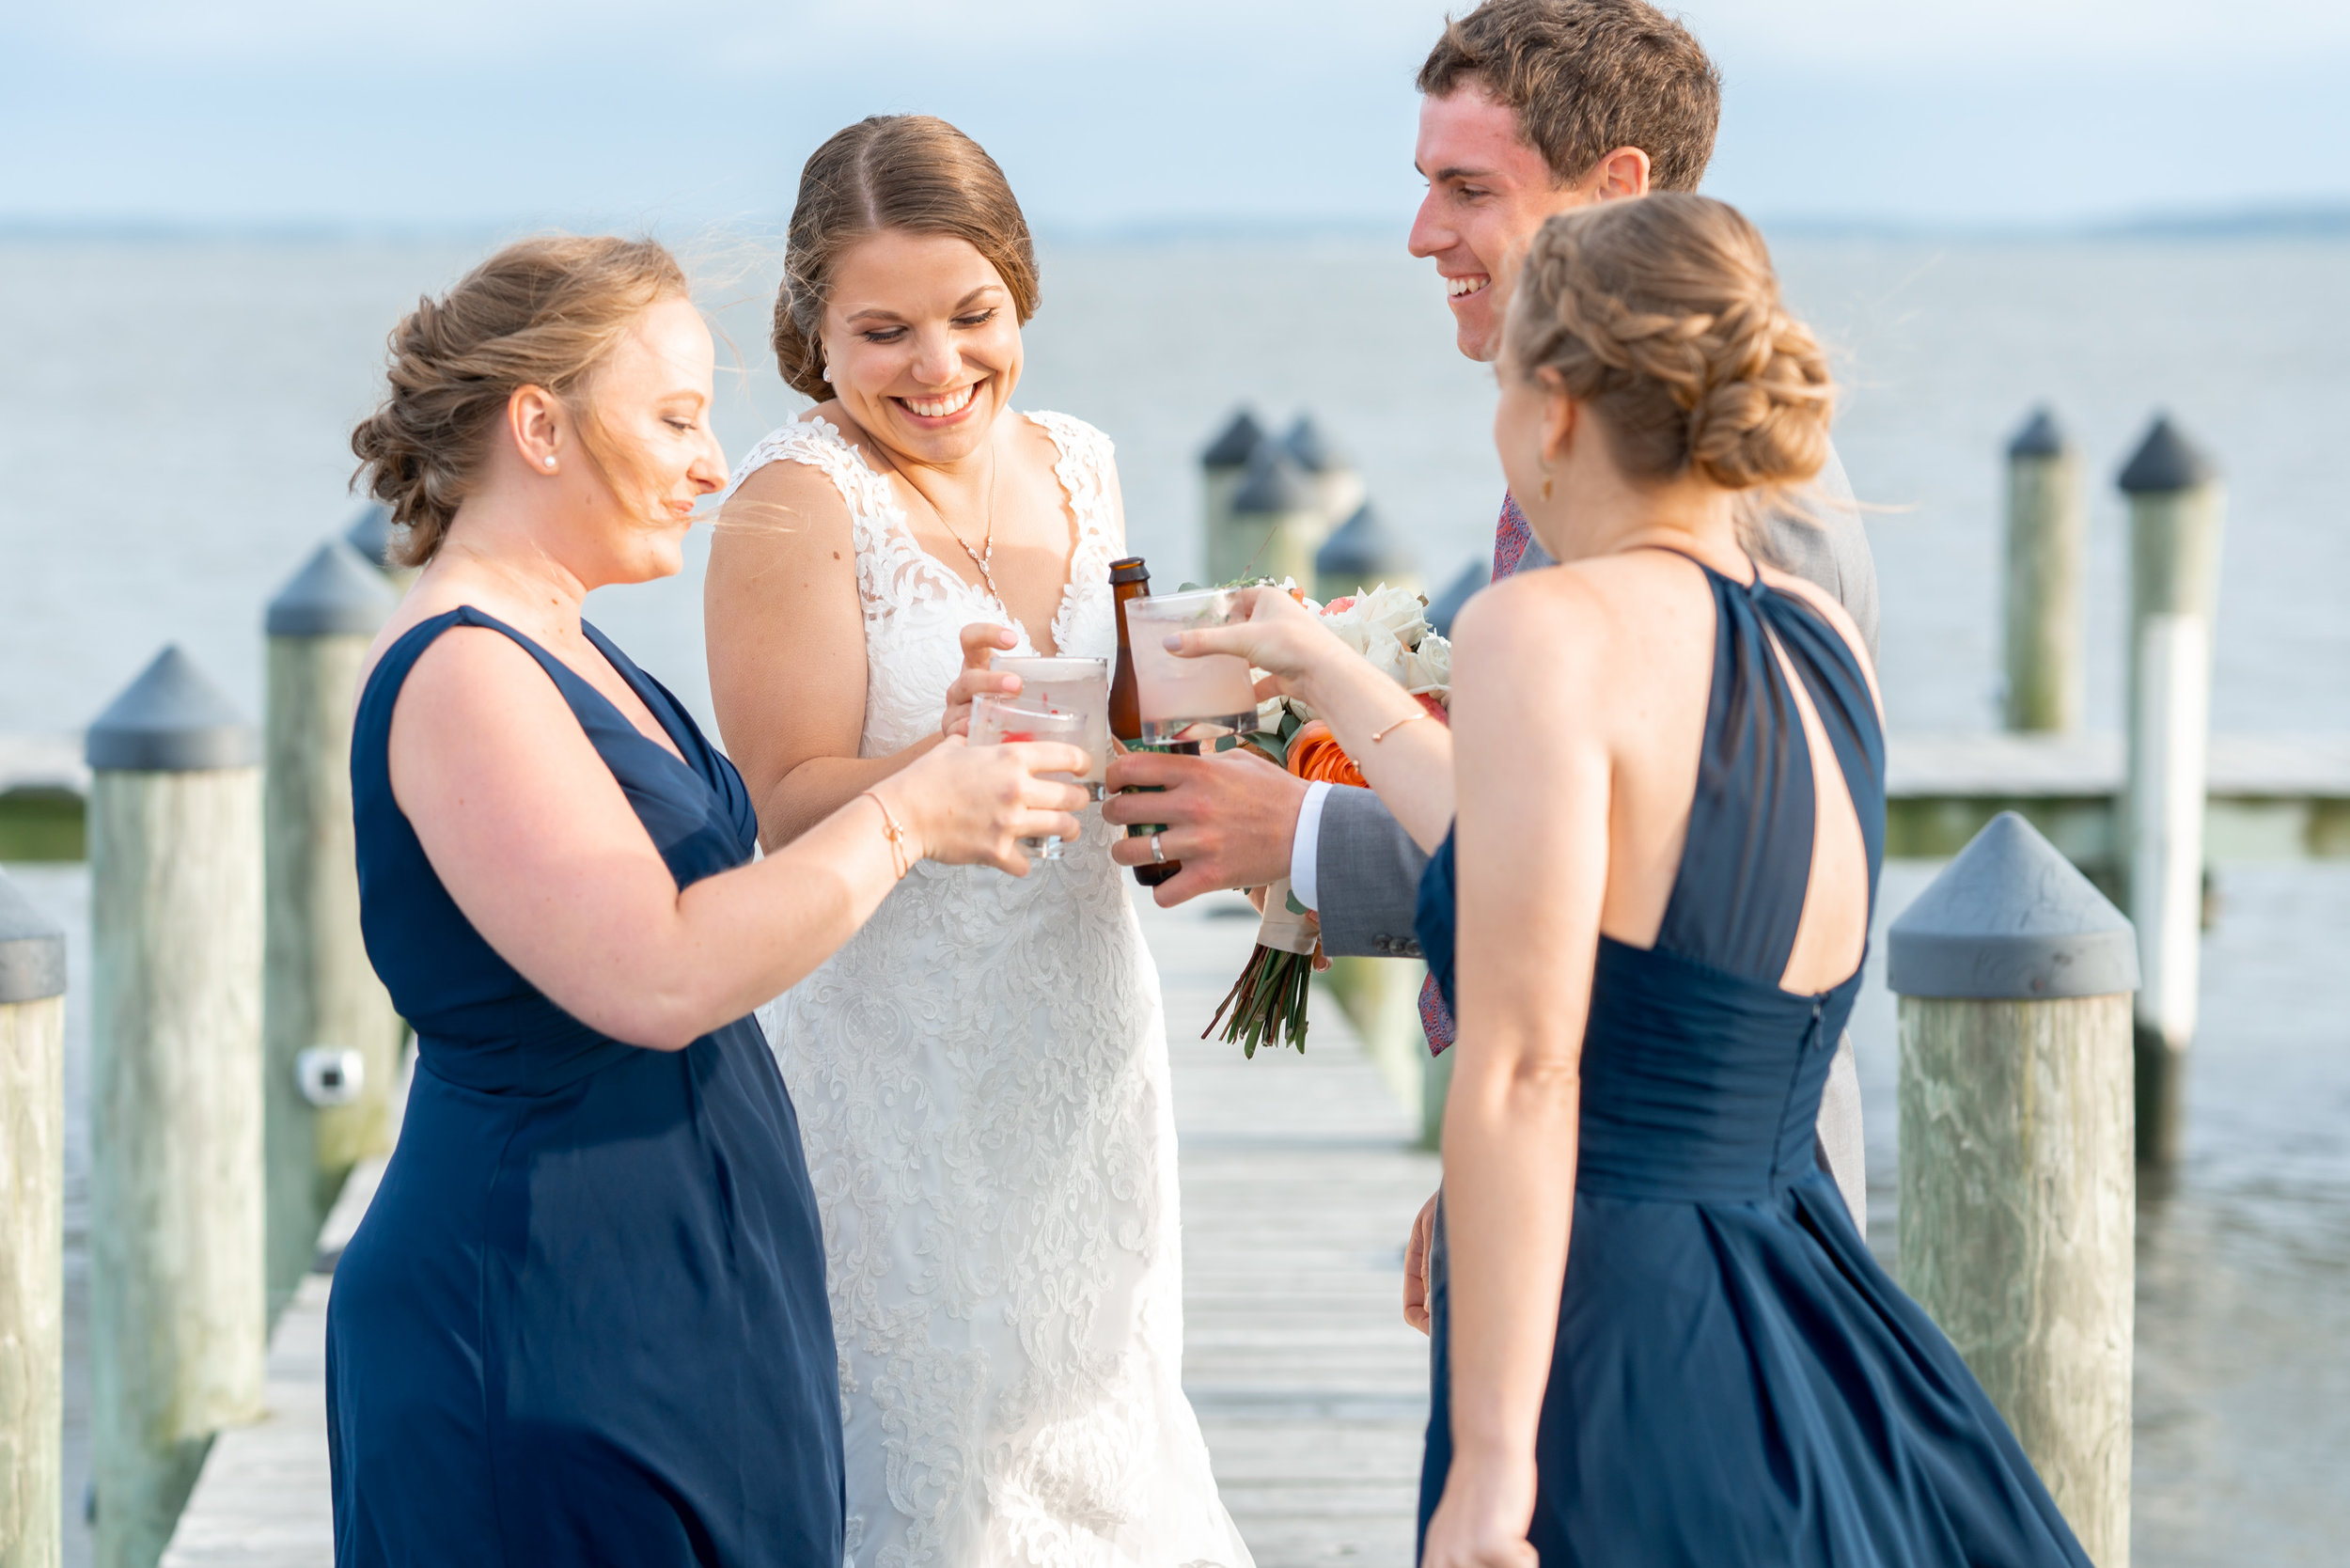 Bridesmaids bring out drinks to the bride and groom on the dock pier